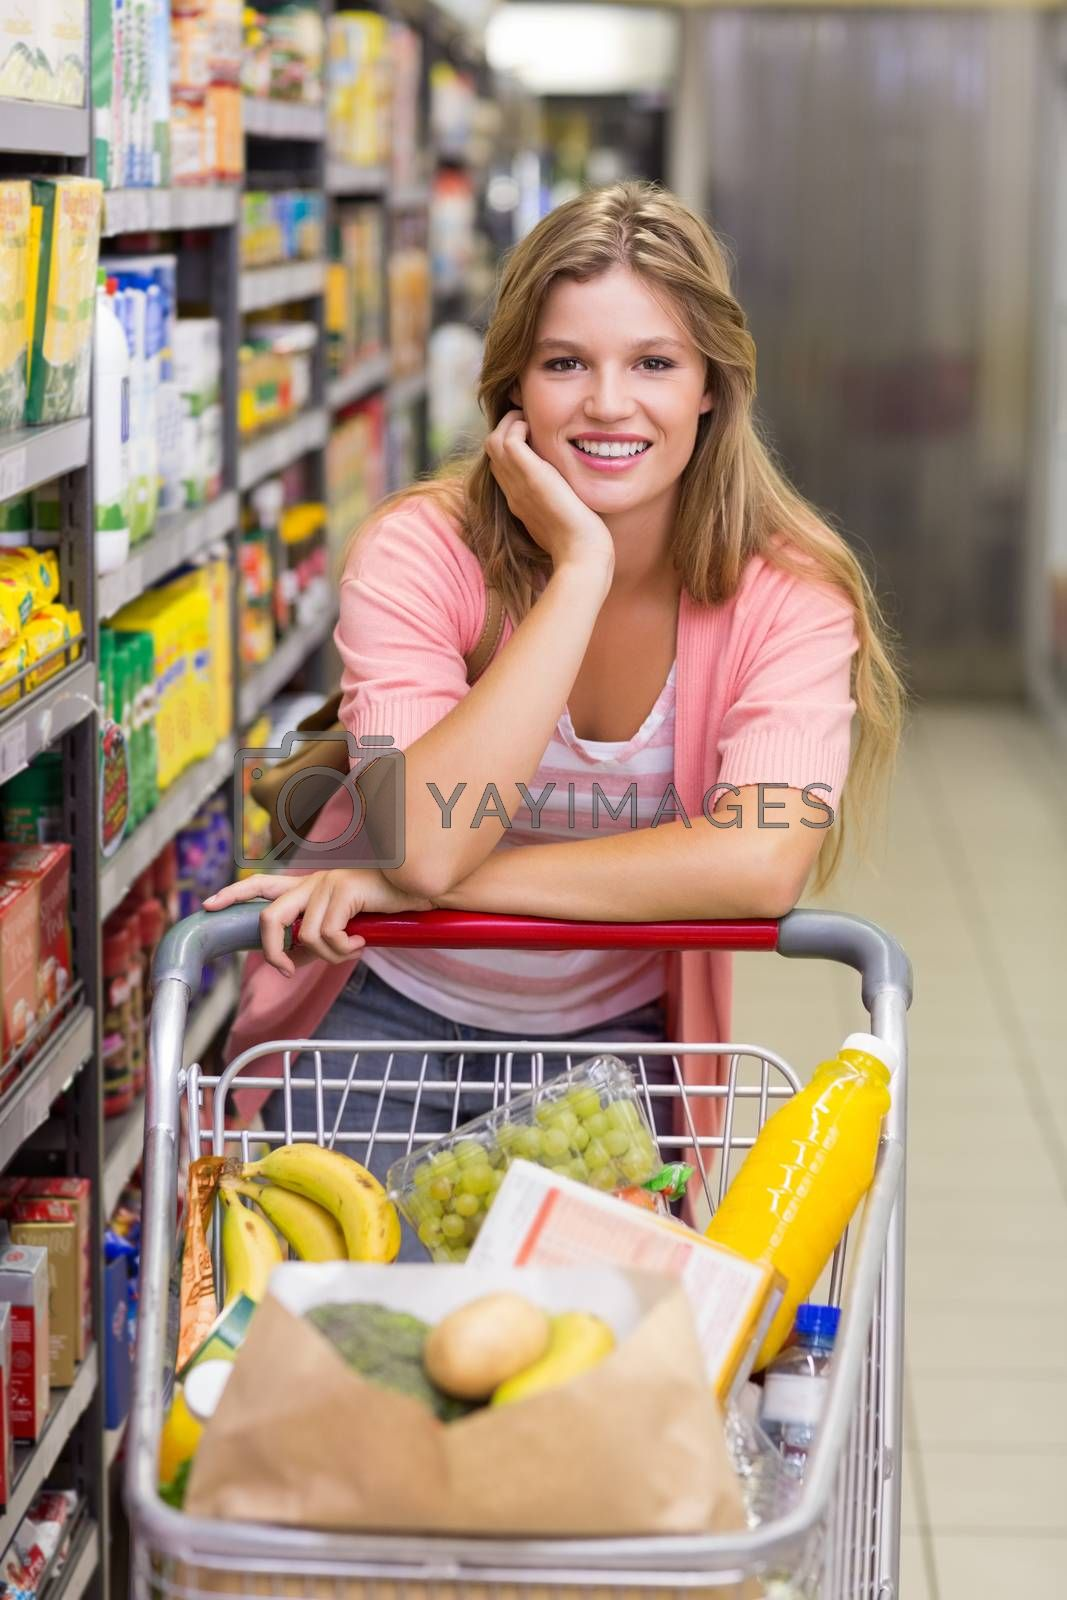 Royalty free image of Portrait of a smiling pretty blonde woman in aisle  by Wavebreakmedia